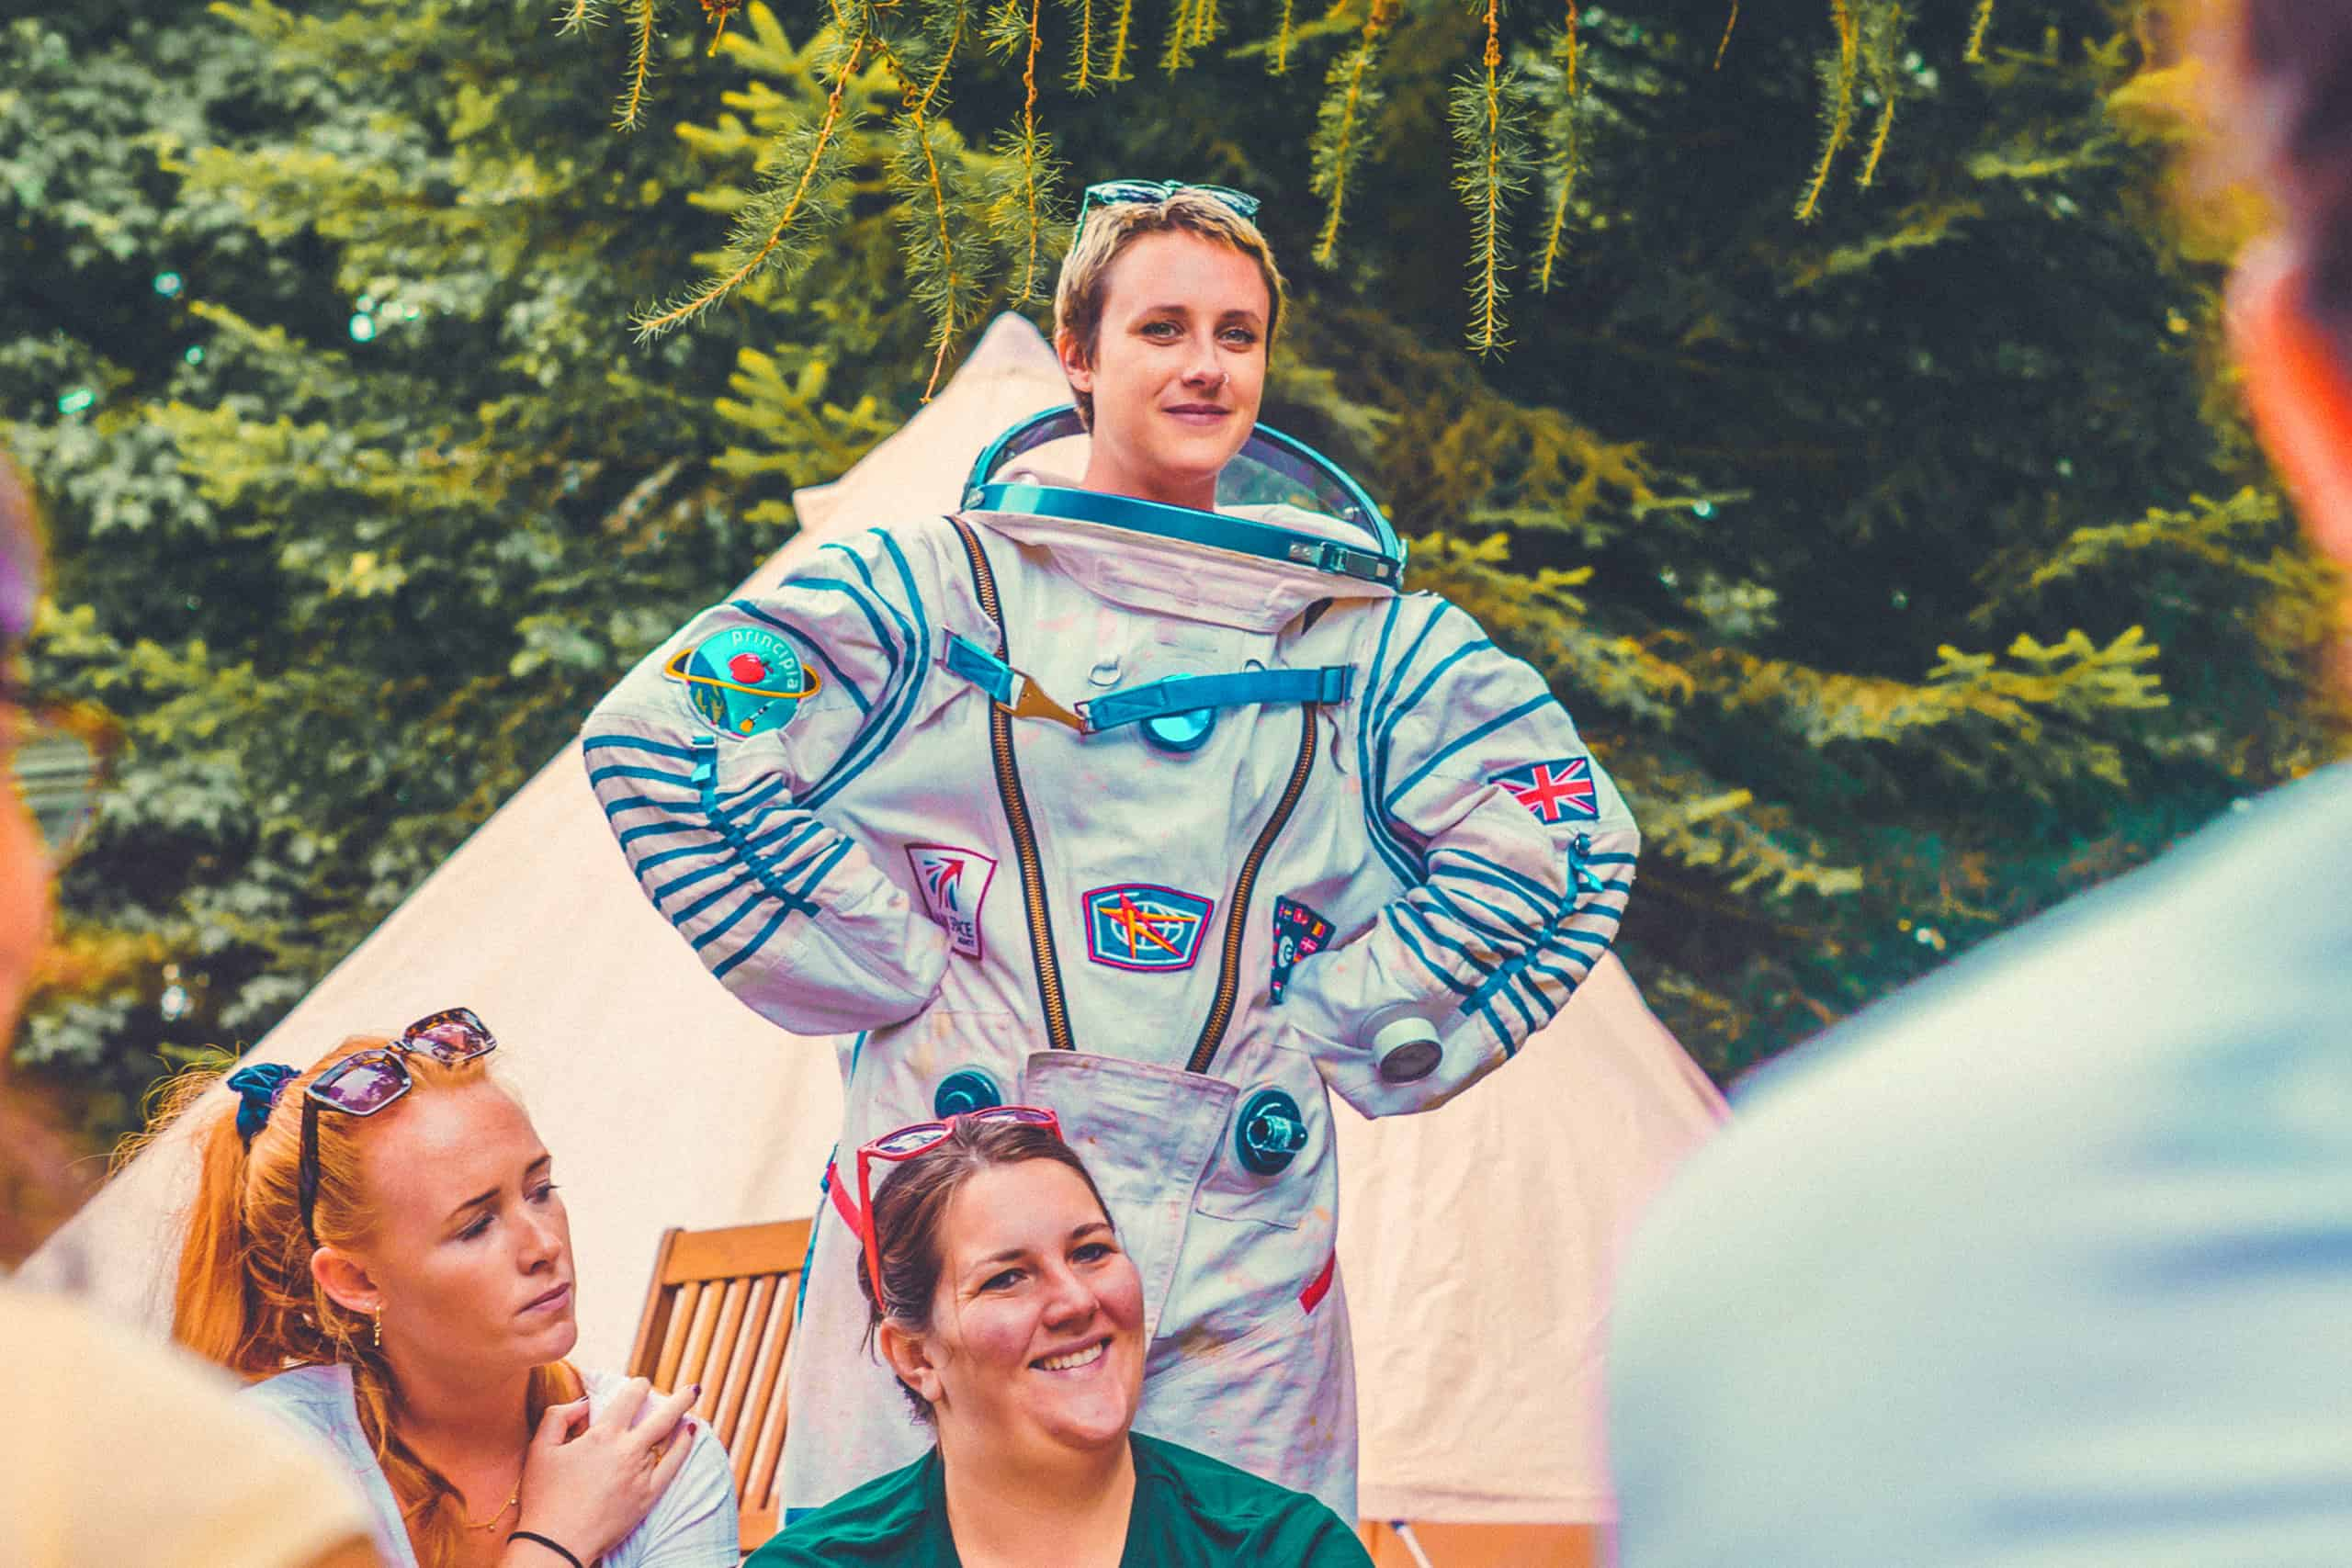 A girl in an astronaut costume learning about astronomy at Camp Wildfire. The UK's Best Alternative Festival. UK's Top Unique Event. A summer weekend break in a forest near London and Kent. An outdoor woodland retreat featuring adventure activities, live music, DJs, parties and camping. Half summer adventure activity camp, half music festival, for adults only.